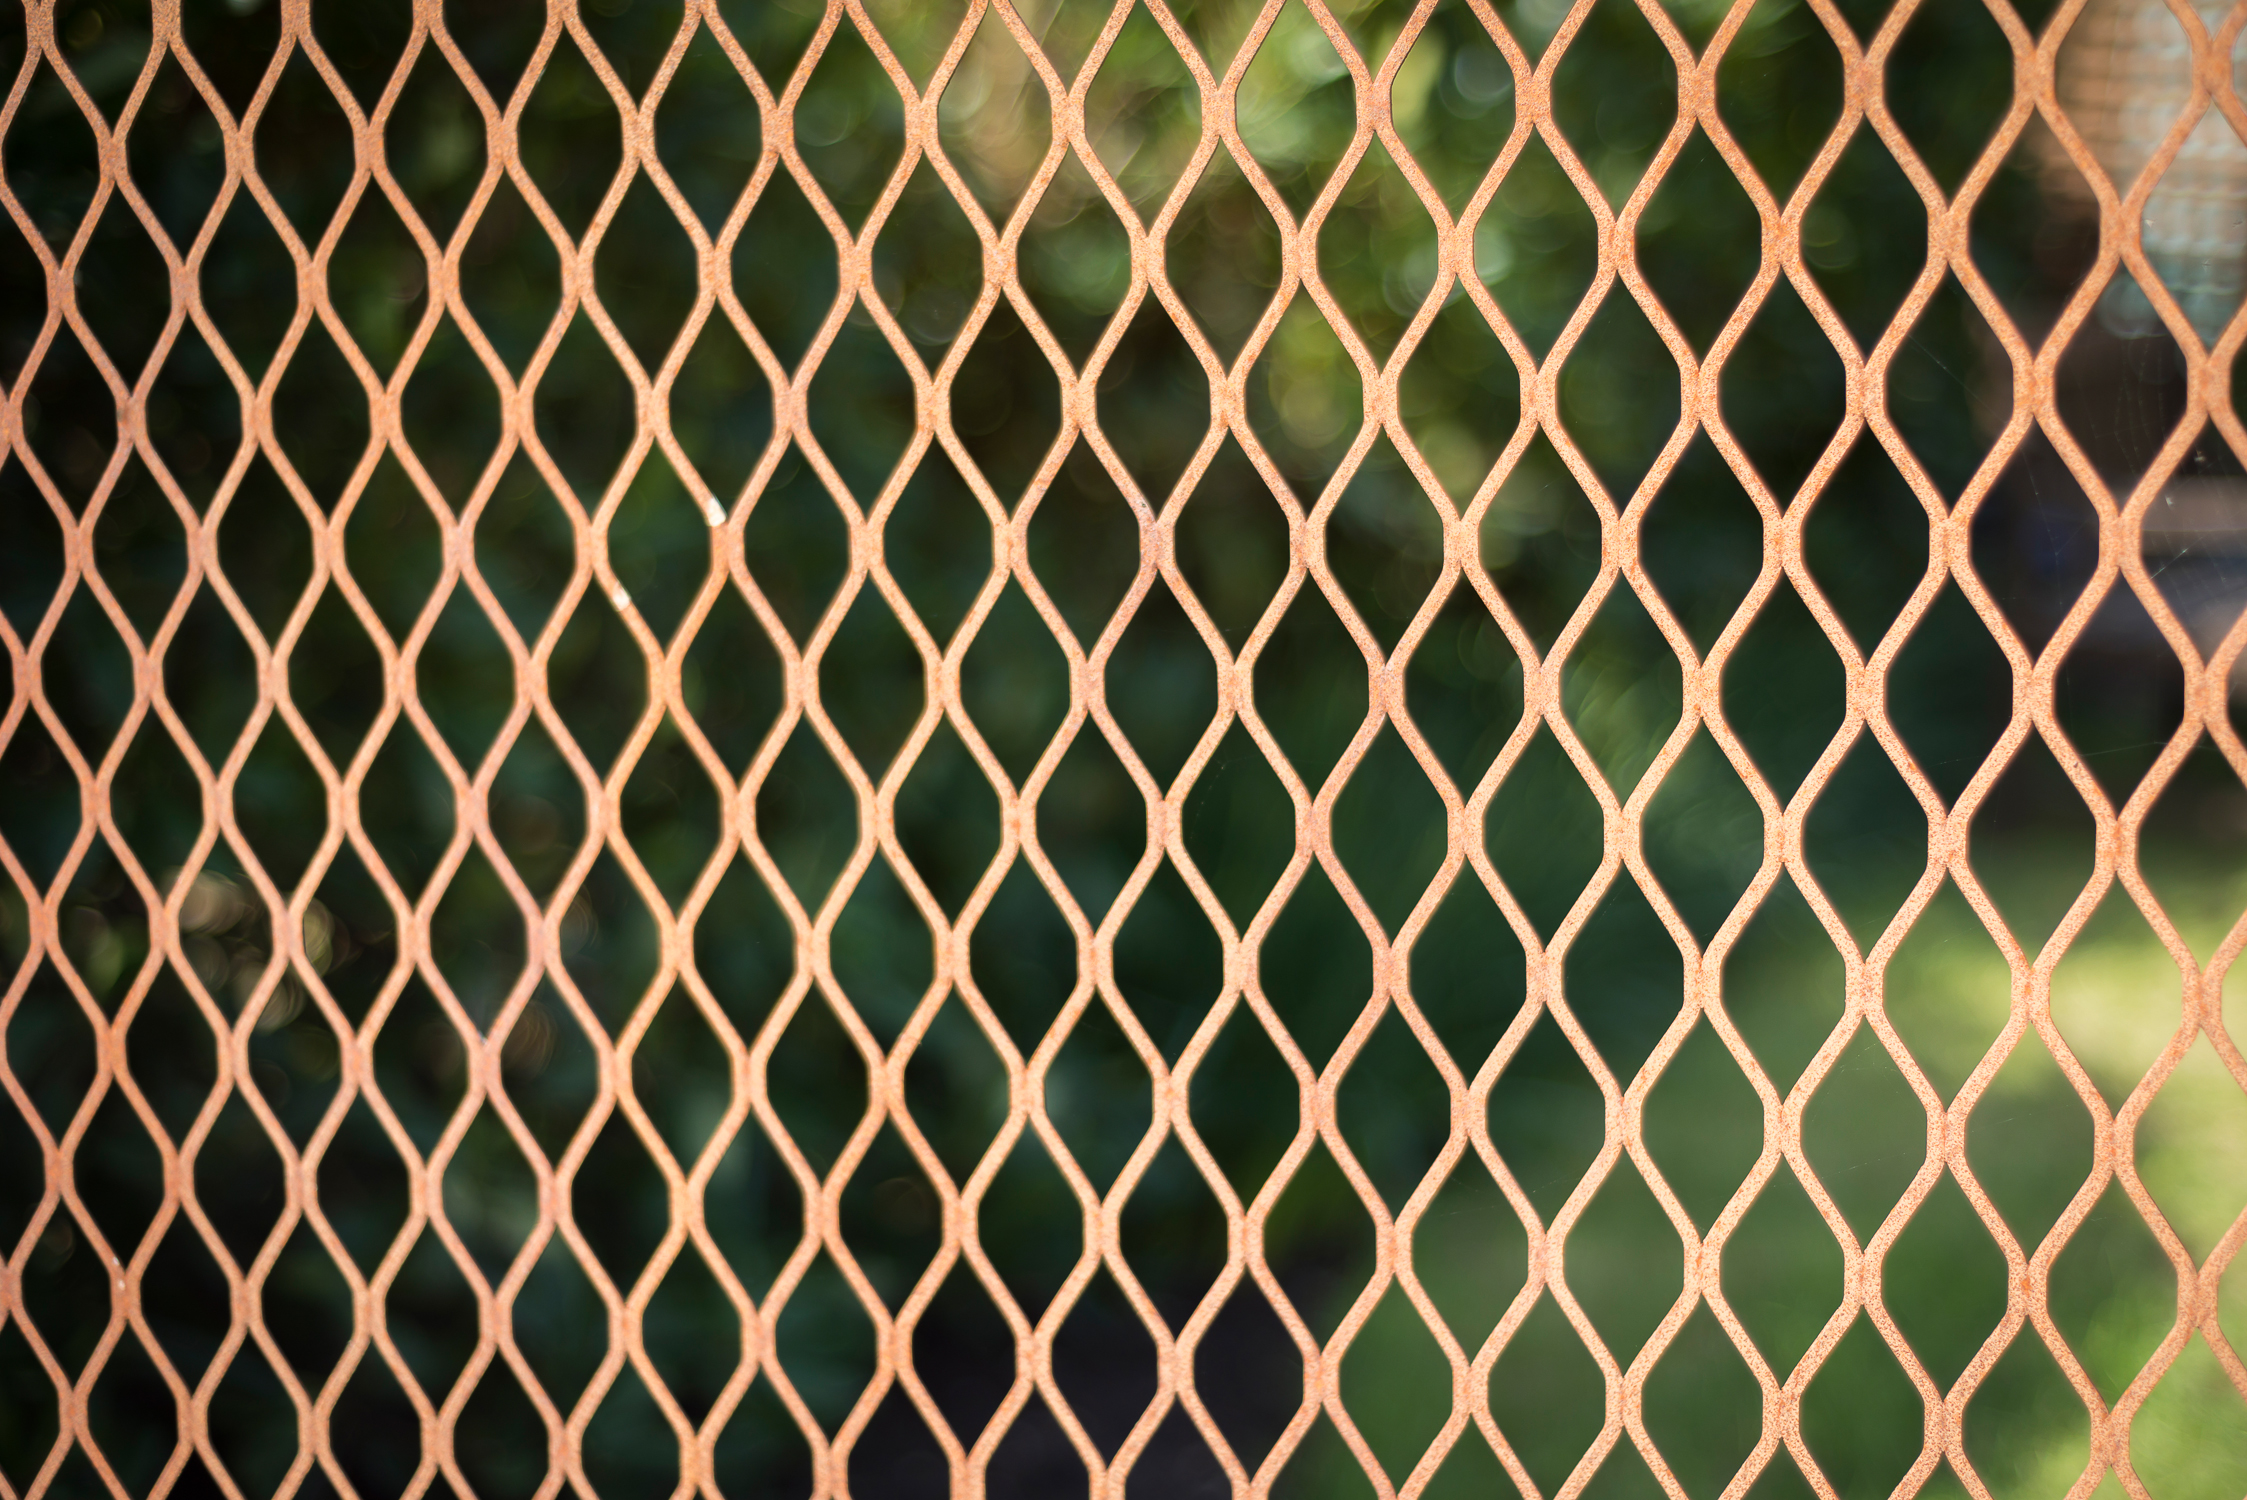 Rusted Mesh Fence Detail